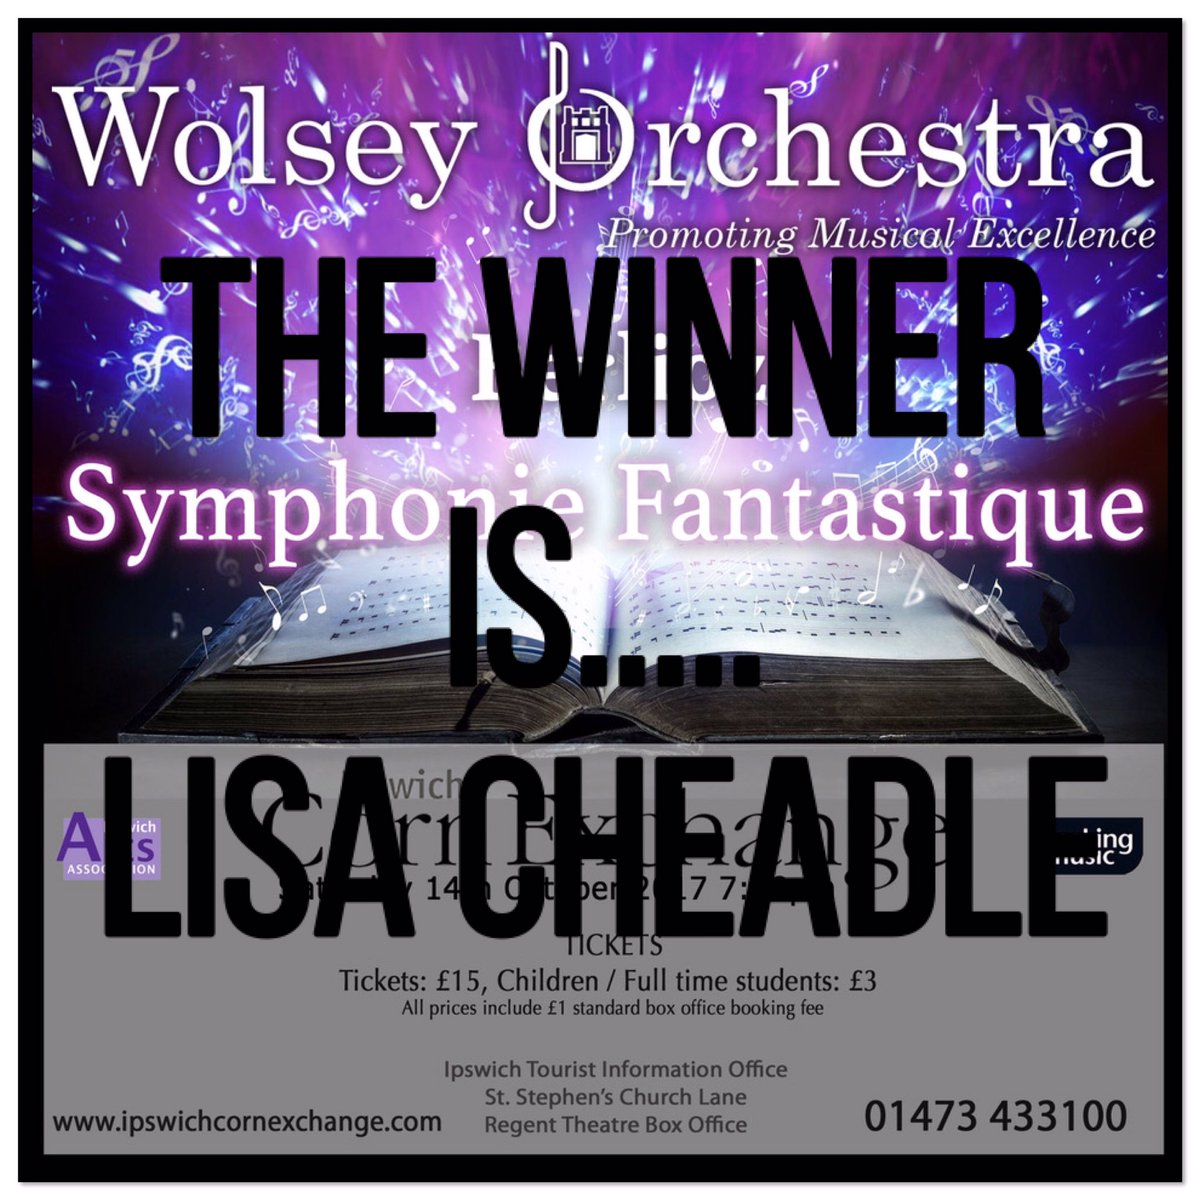 Congratulations to our Competition Winner #winner #concert #tickets #orchestra #localmusic<br>http://pic.twitter.com/b1ljpPYBnf